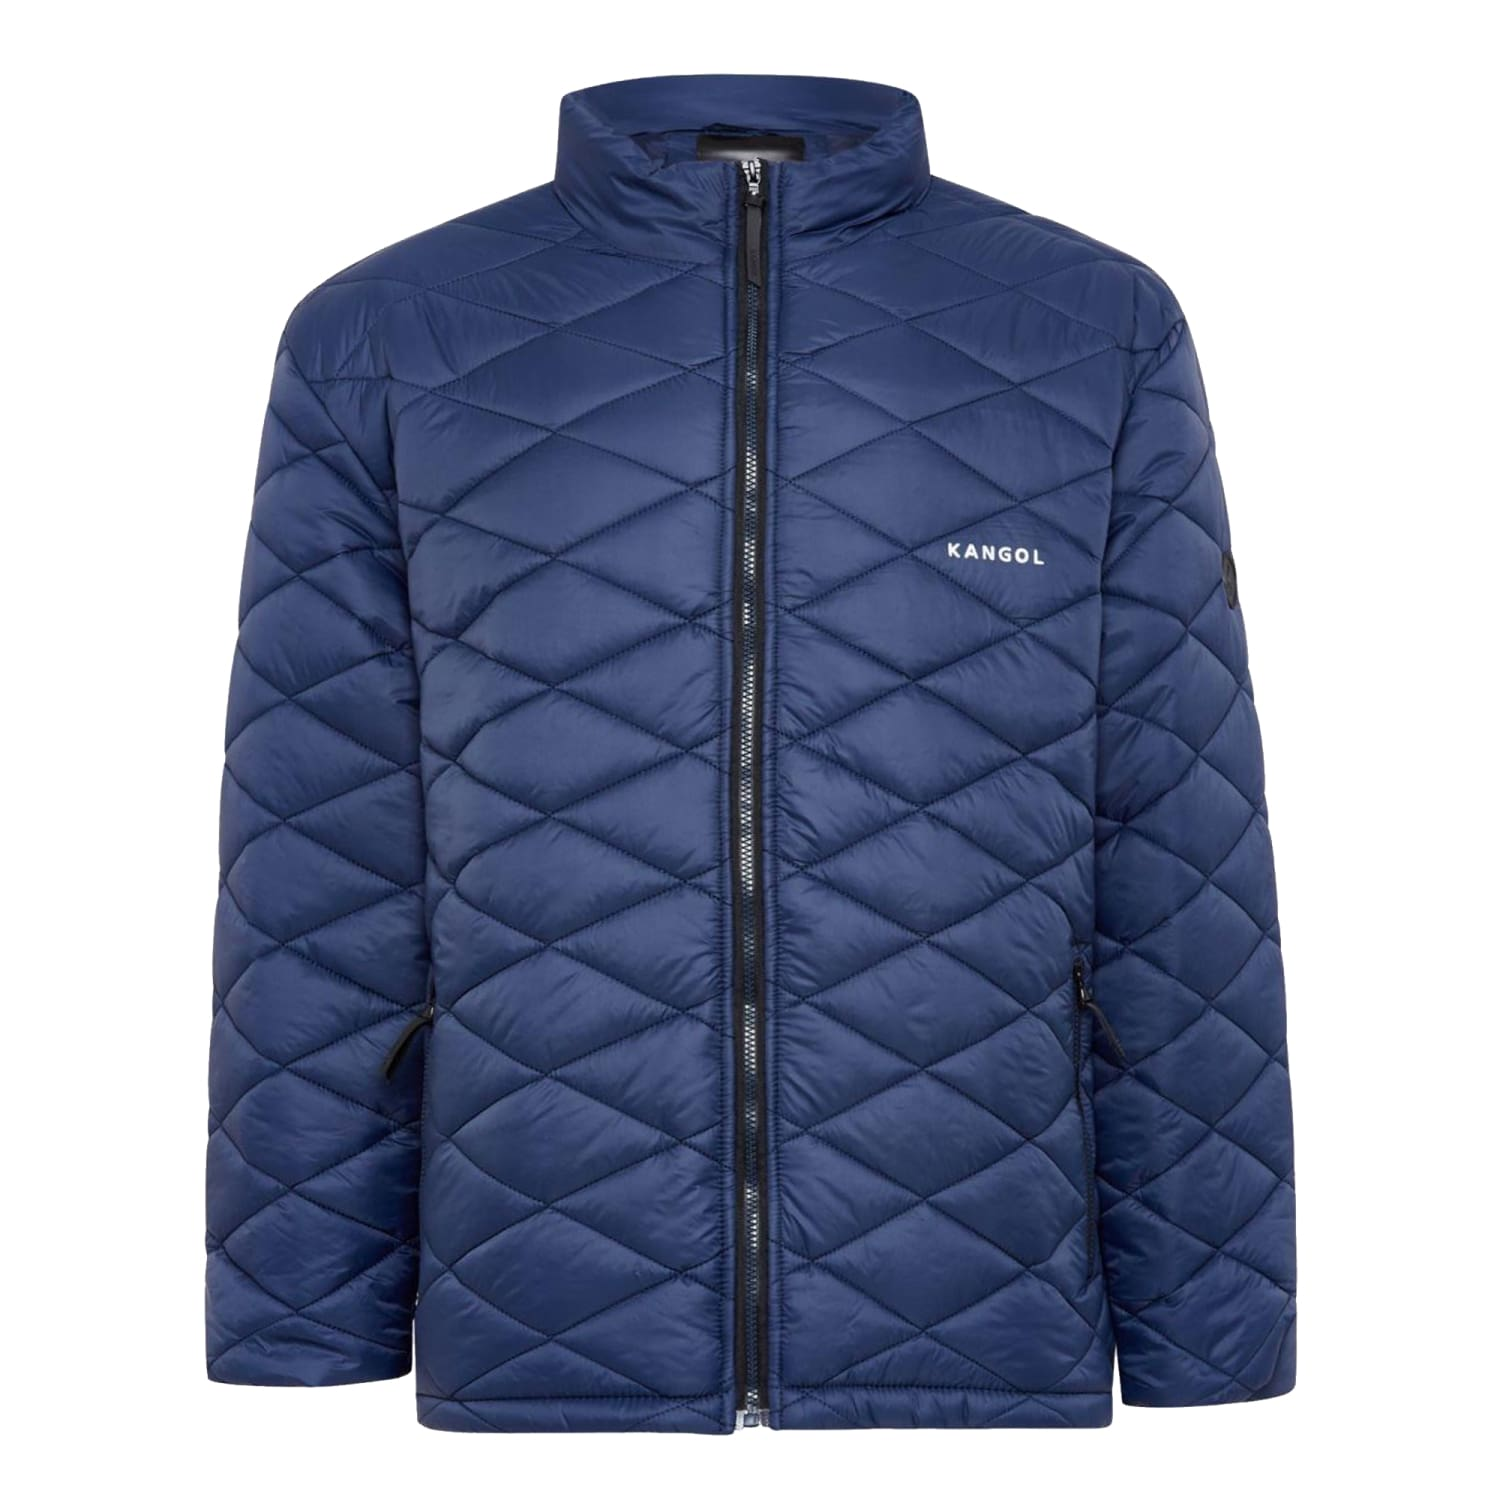 Kangol Padded Jacket - Cavern - Navy 1